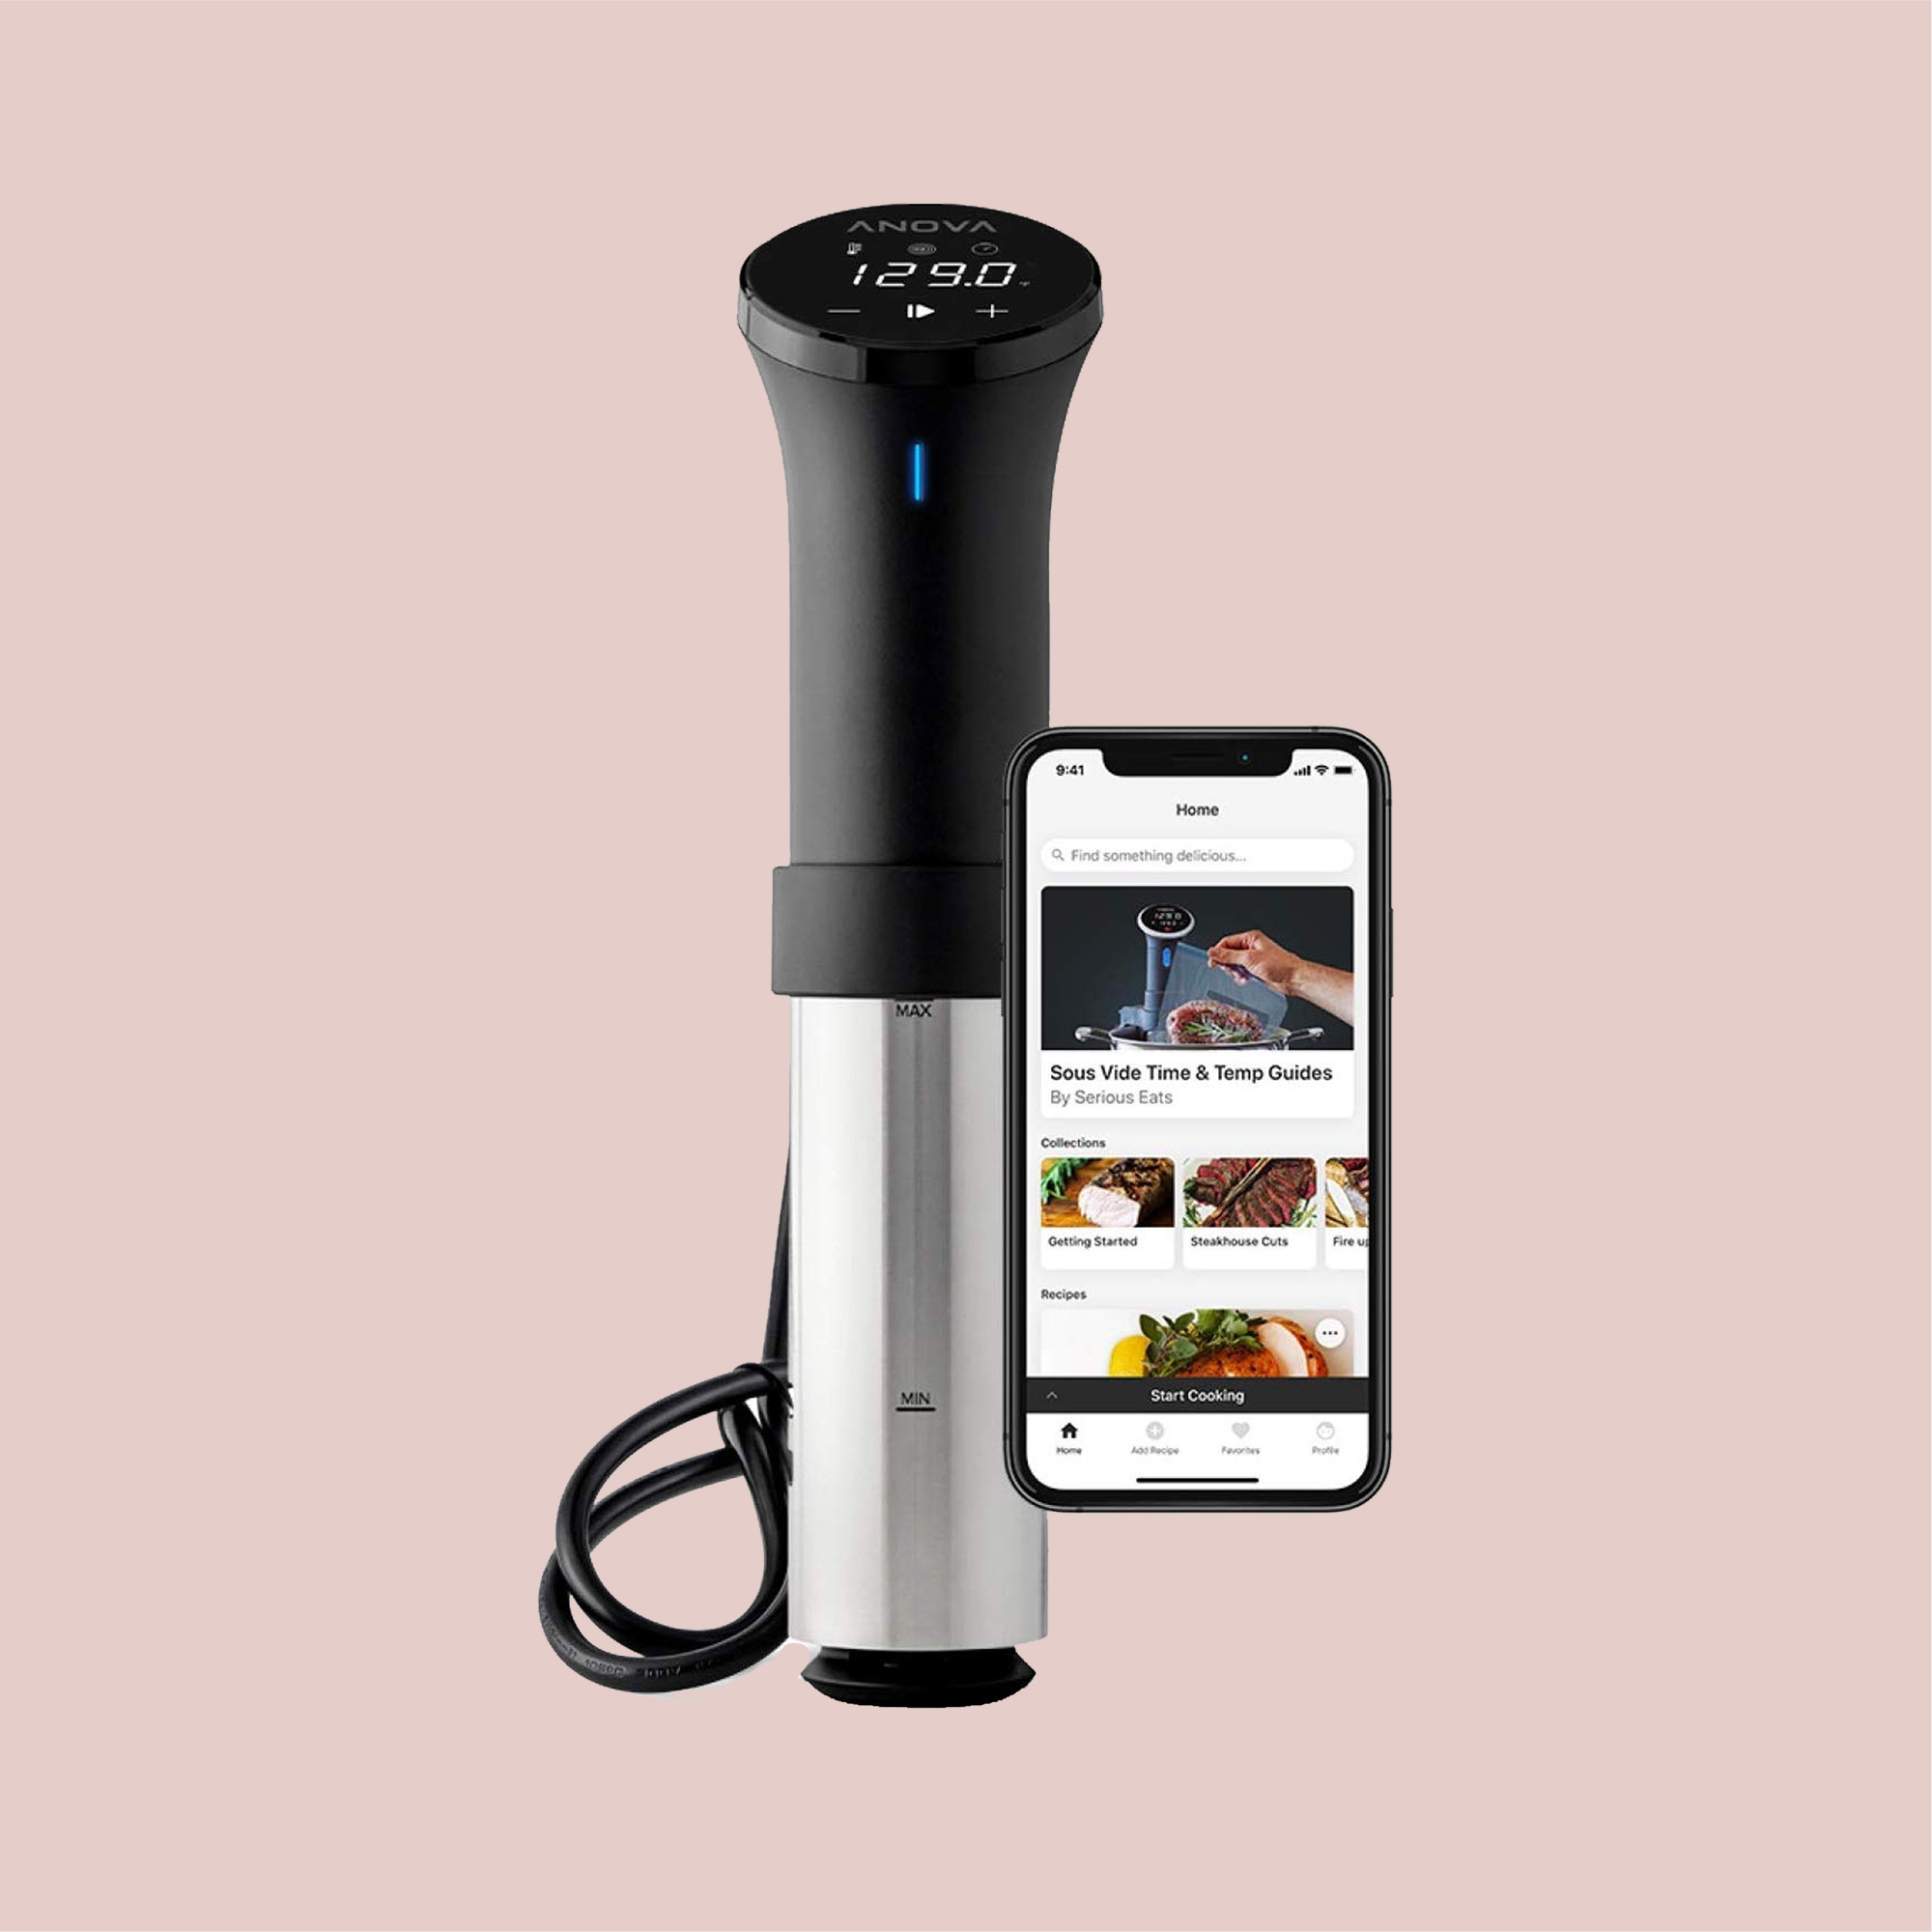 Sous Vide Cooker with Wifi